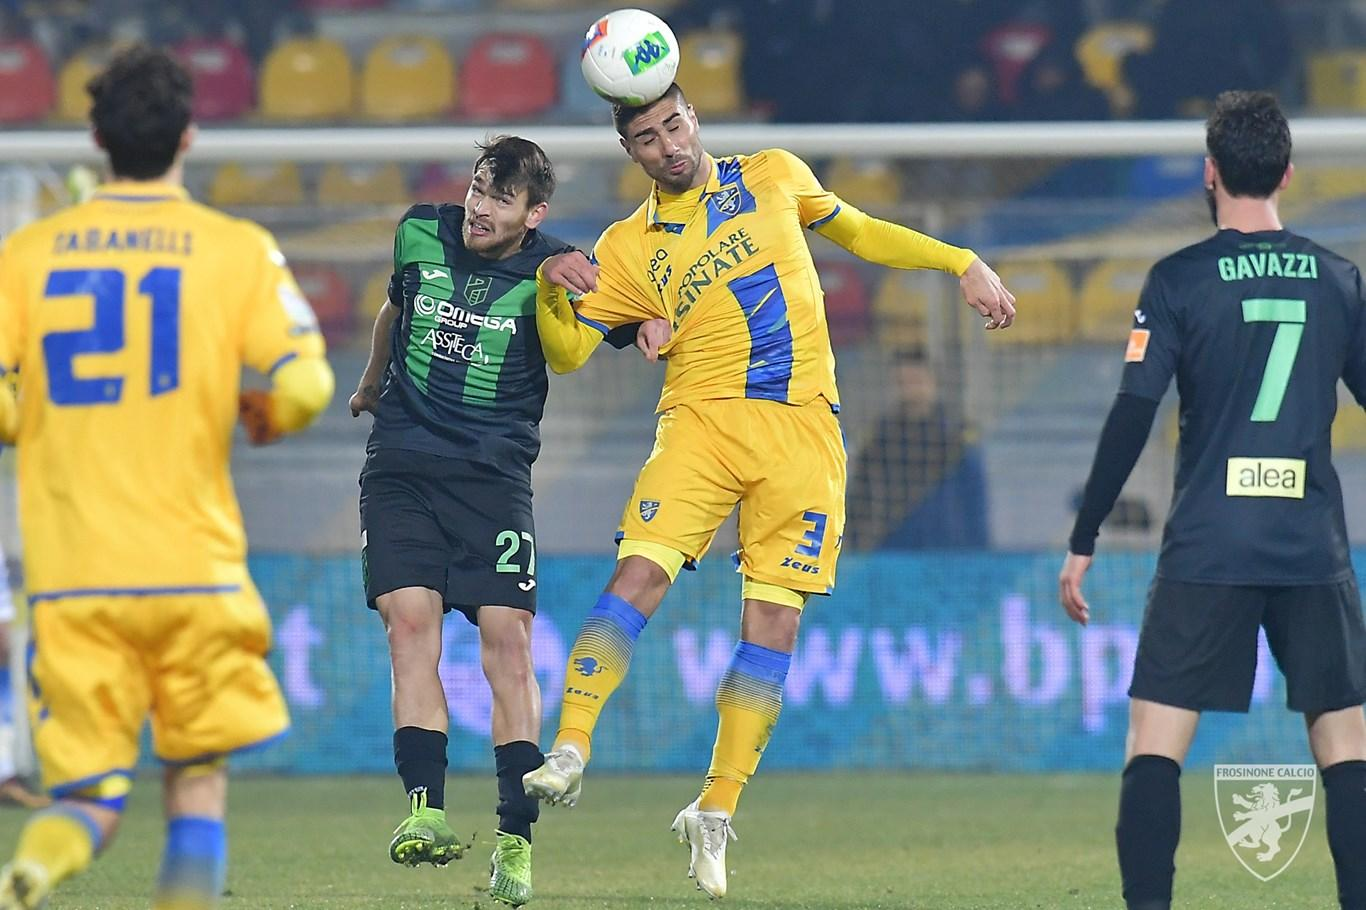 Vicenza Virtus vs Frosinone: which bet to choose?